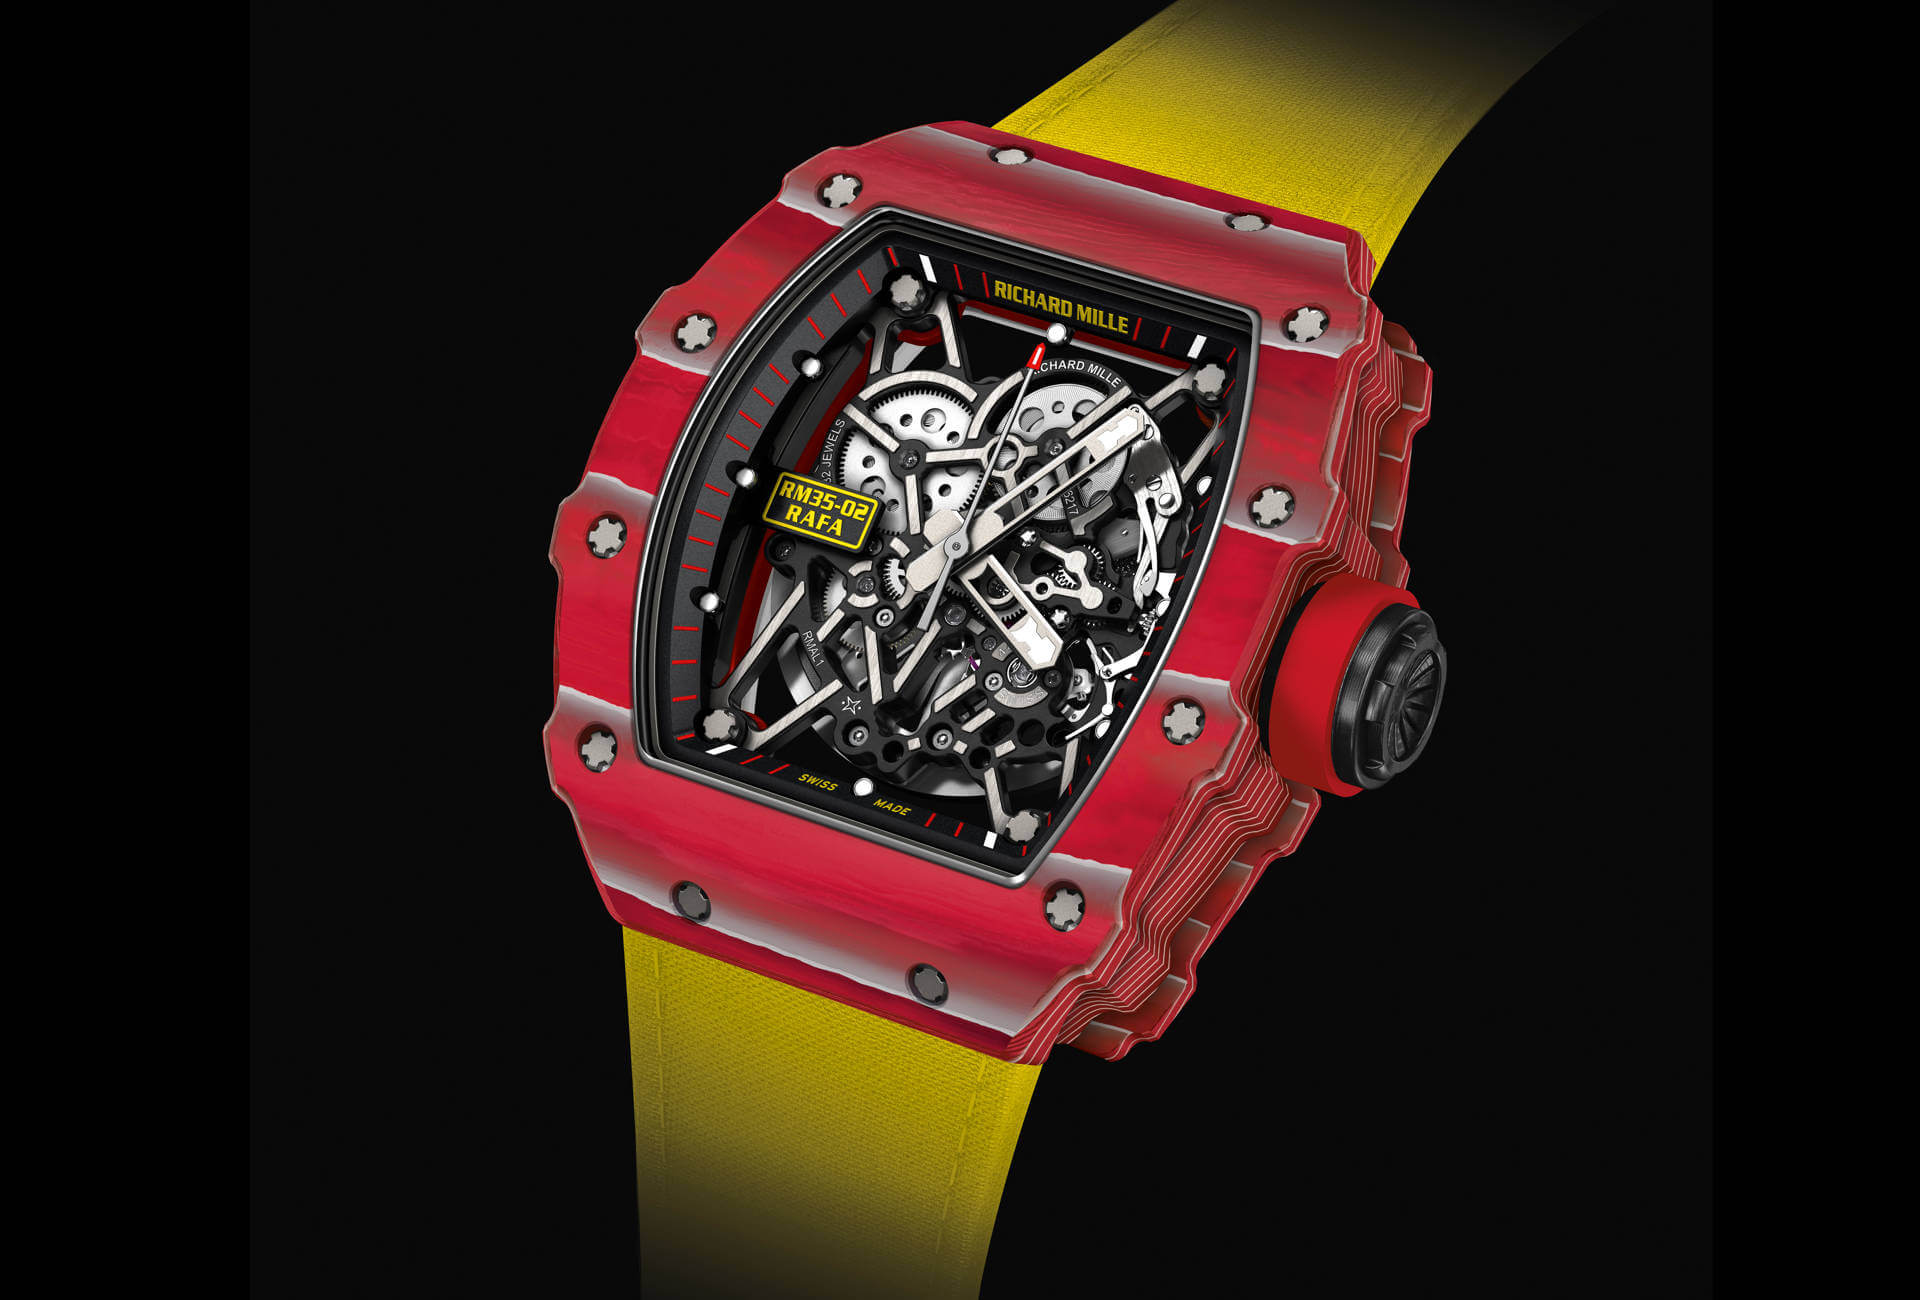 Richard Mille Rafael Nadal S New Automatic Watch Fhh Journal